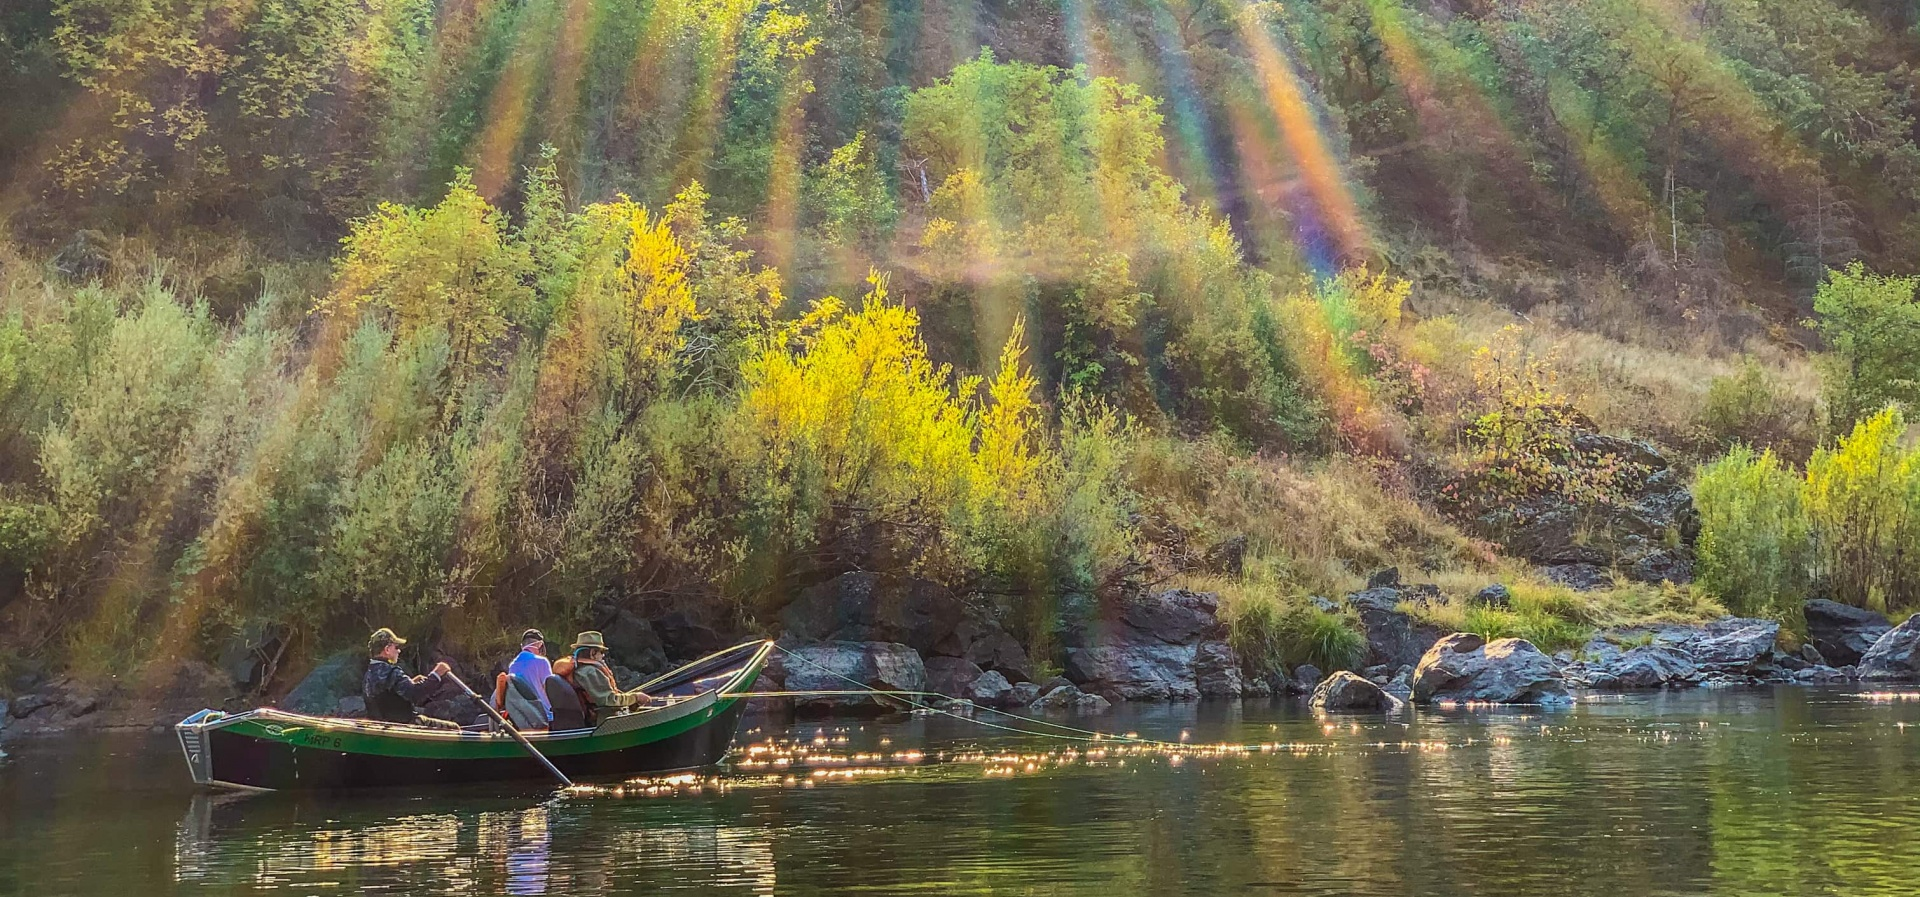 Guided fishing on the Rogue River in a drift boat